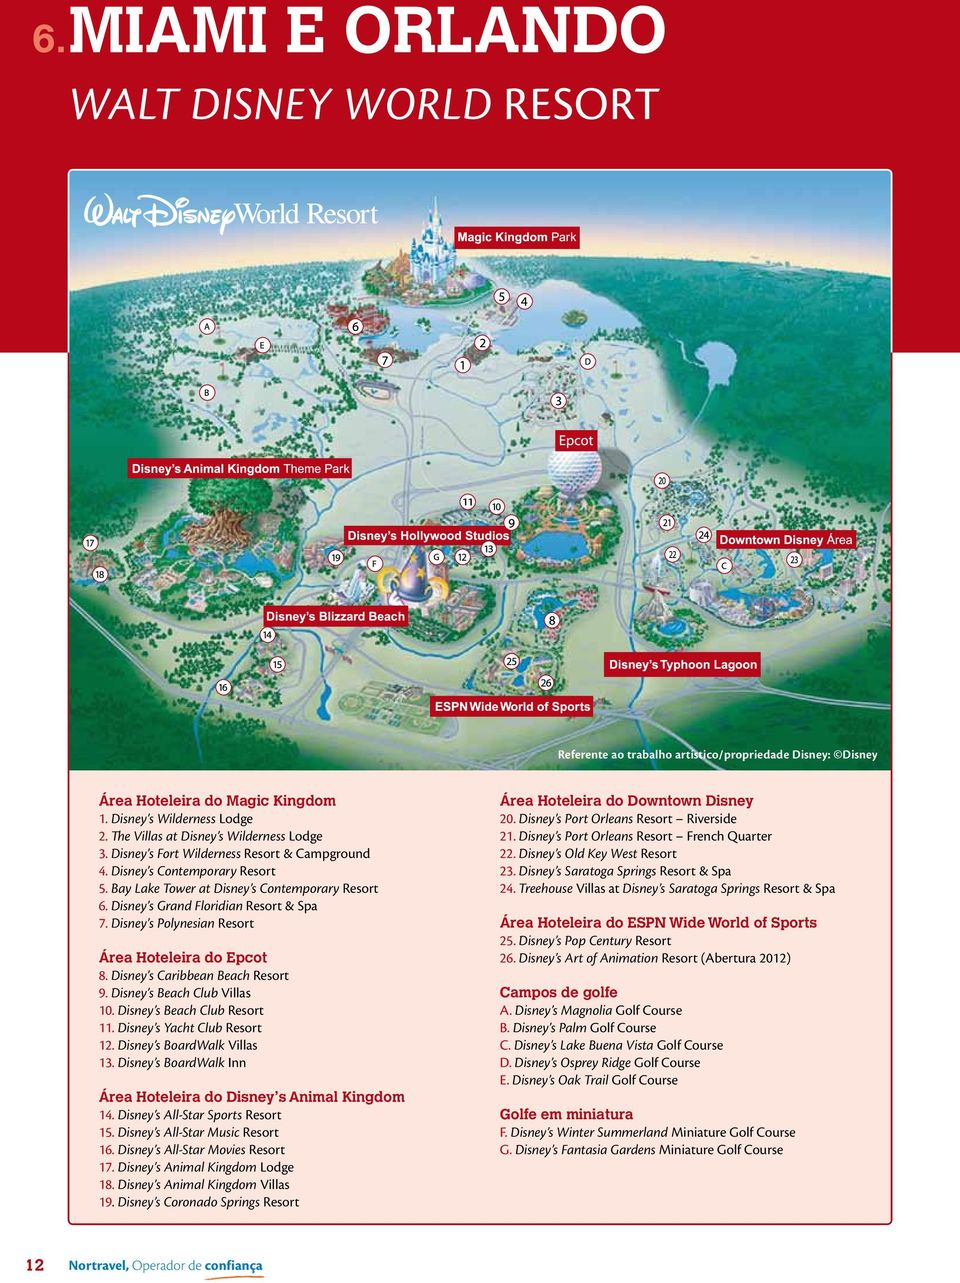 Disney s Grand Floridian Resort & Spa 7. Disney s Polynesian Resort Área Hoteleira do Epcot 8. Disney s Caribbean Beach Resort 9. Disney s Beach Club Villas 10. Disney s Beach Club Resort 11.